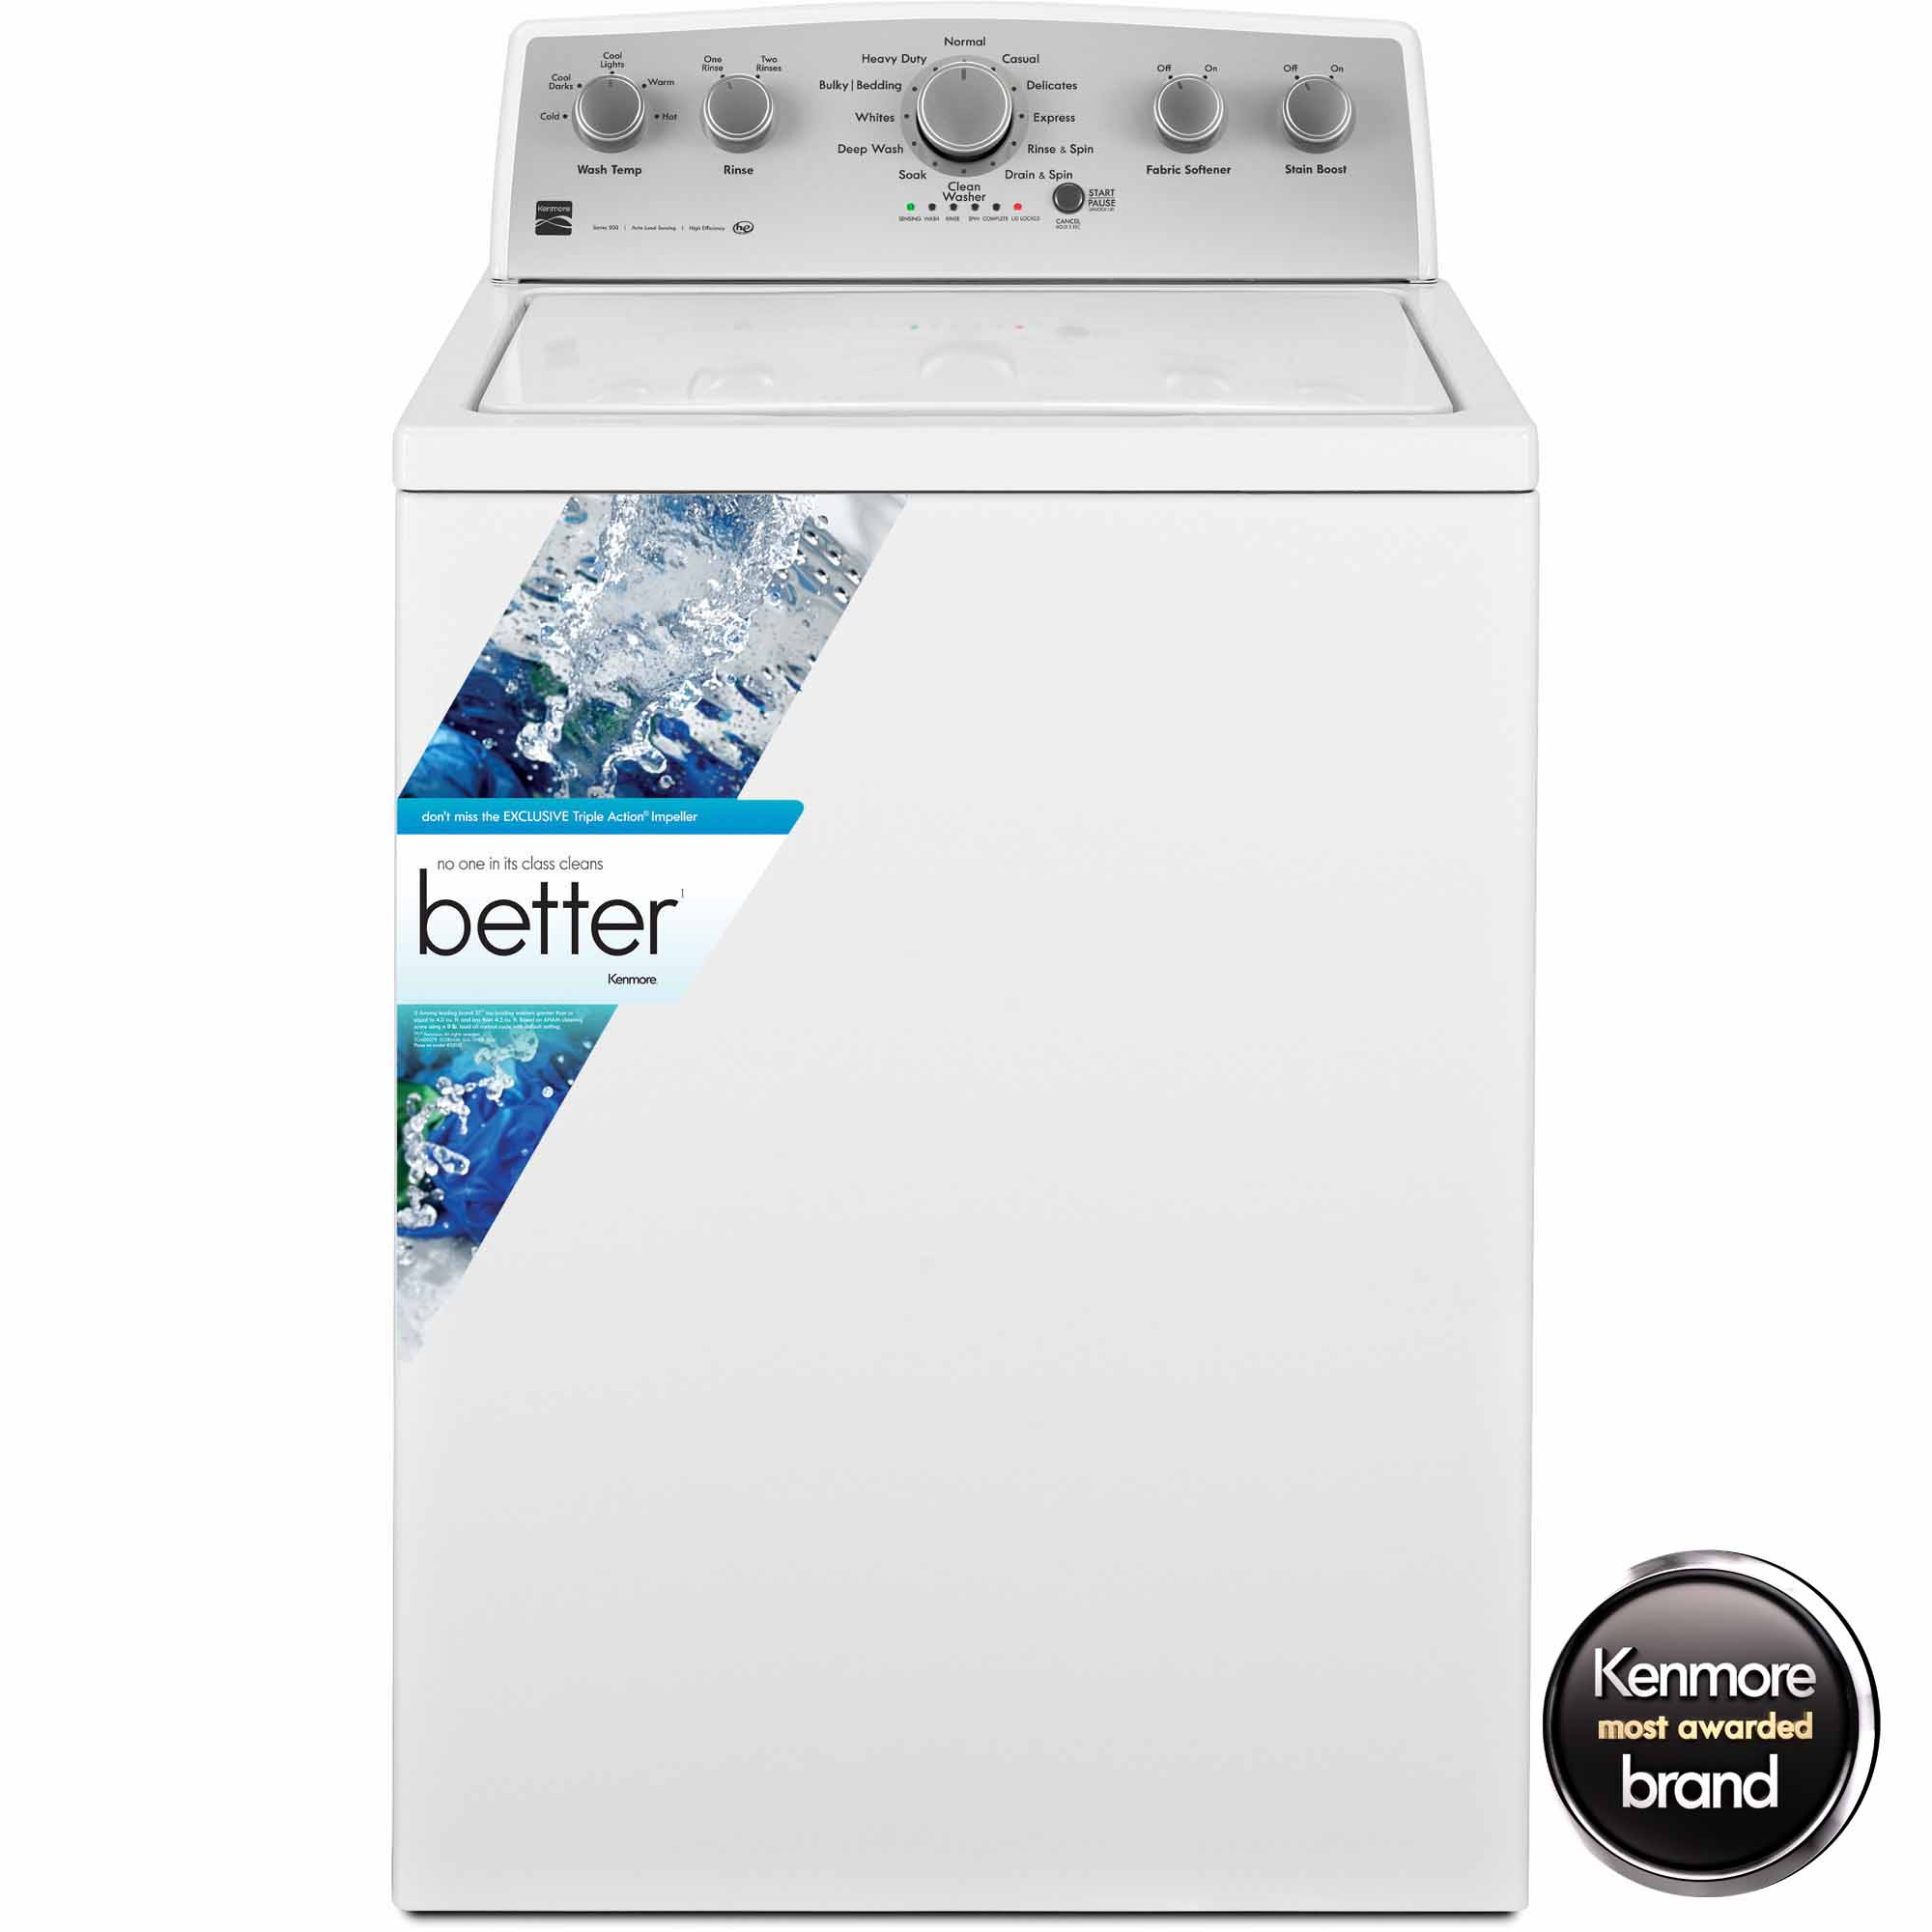 Kenmore 25132 Top Load 4 3 Cu Ft Washer Review Best